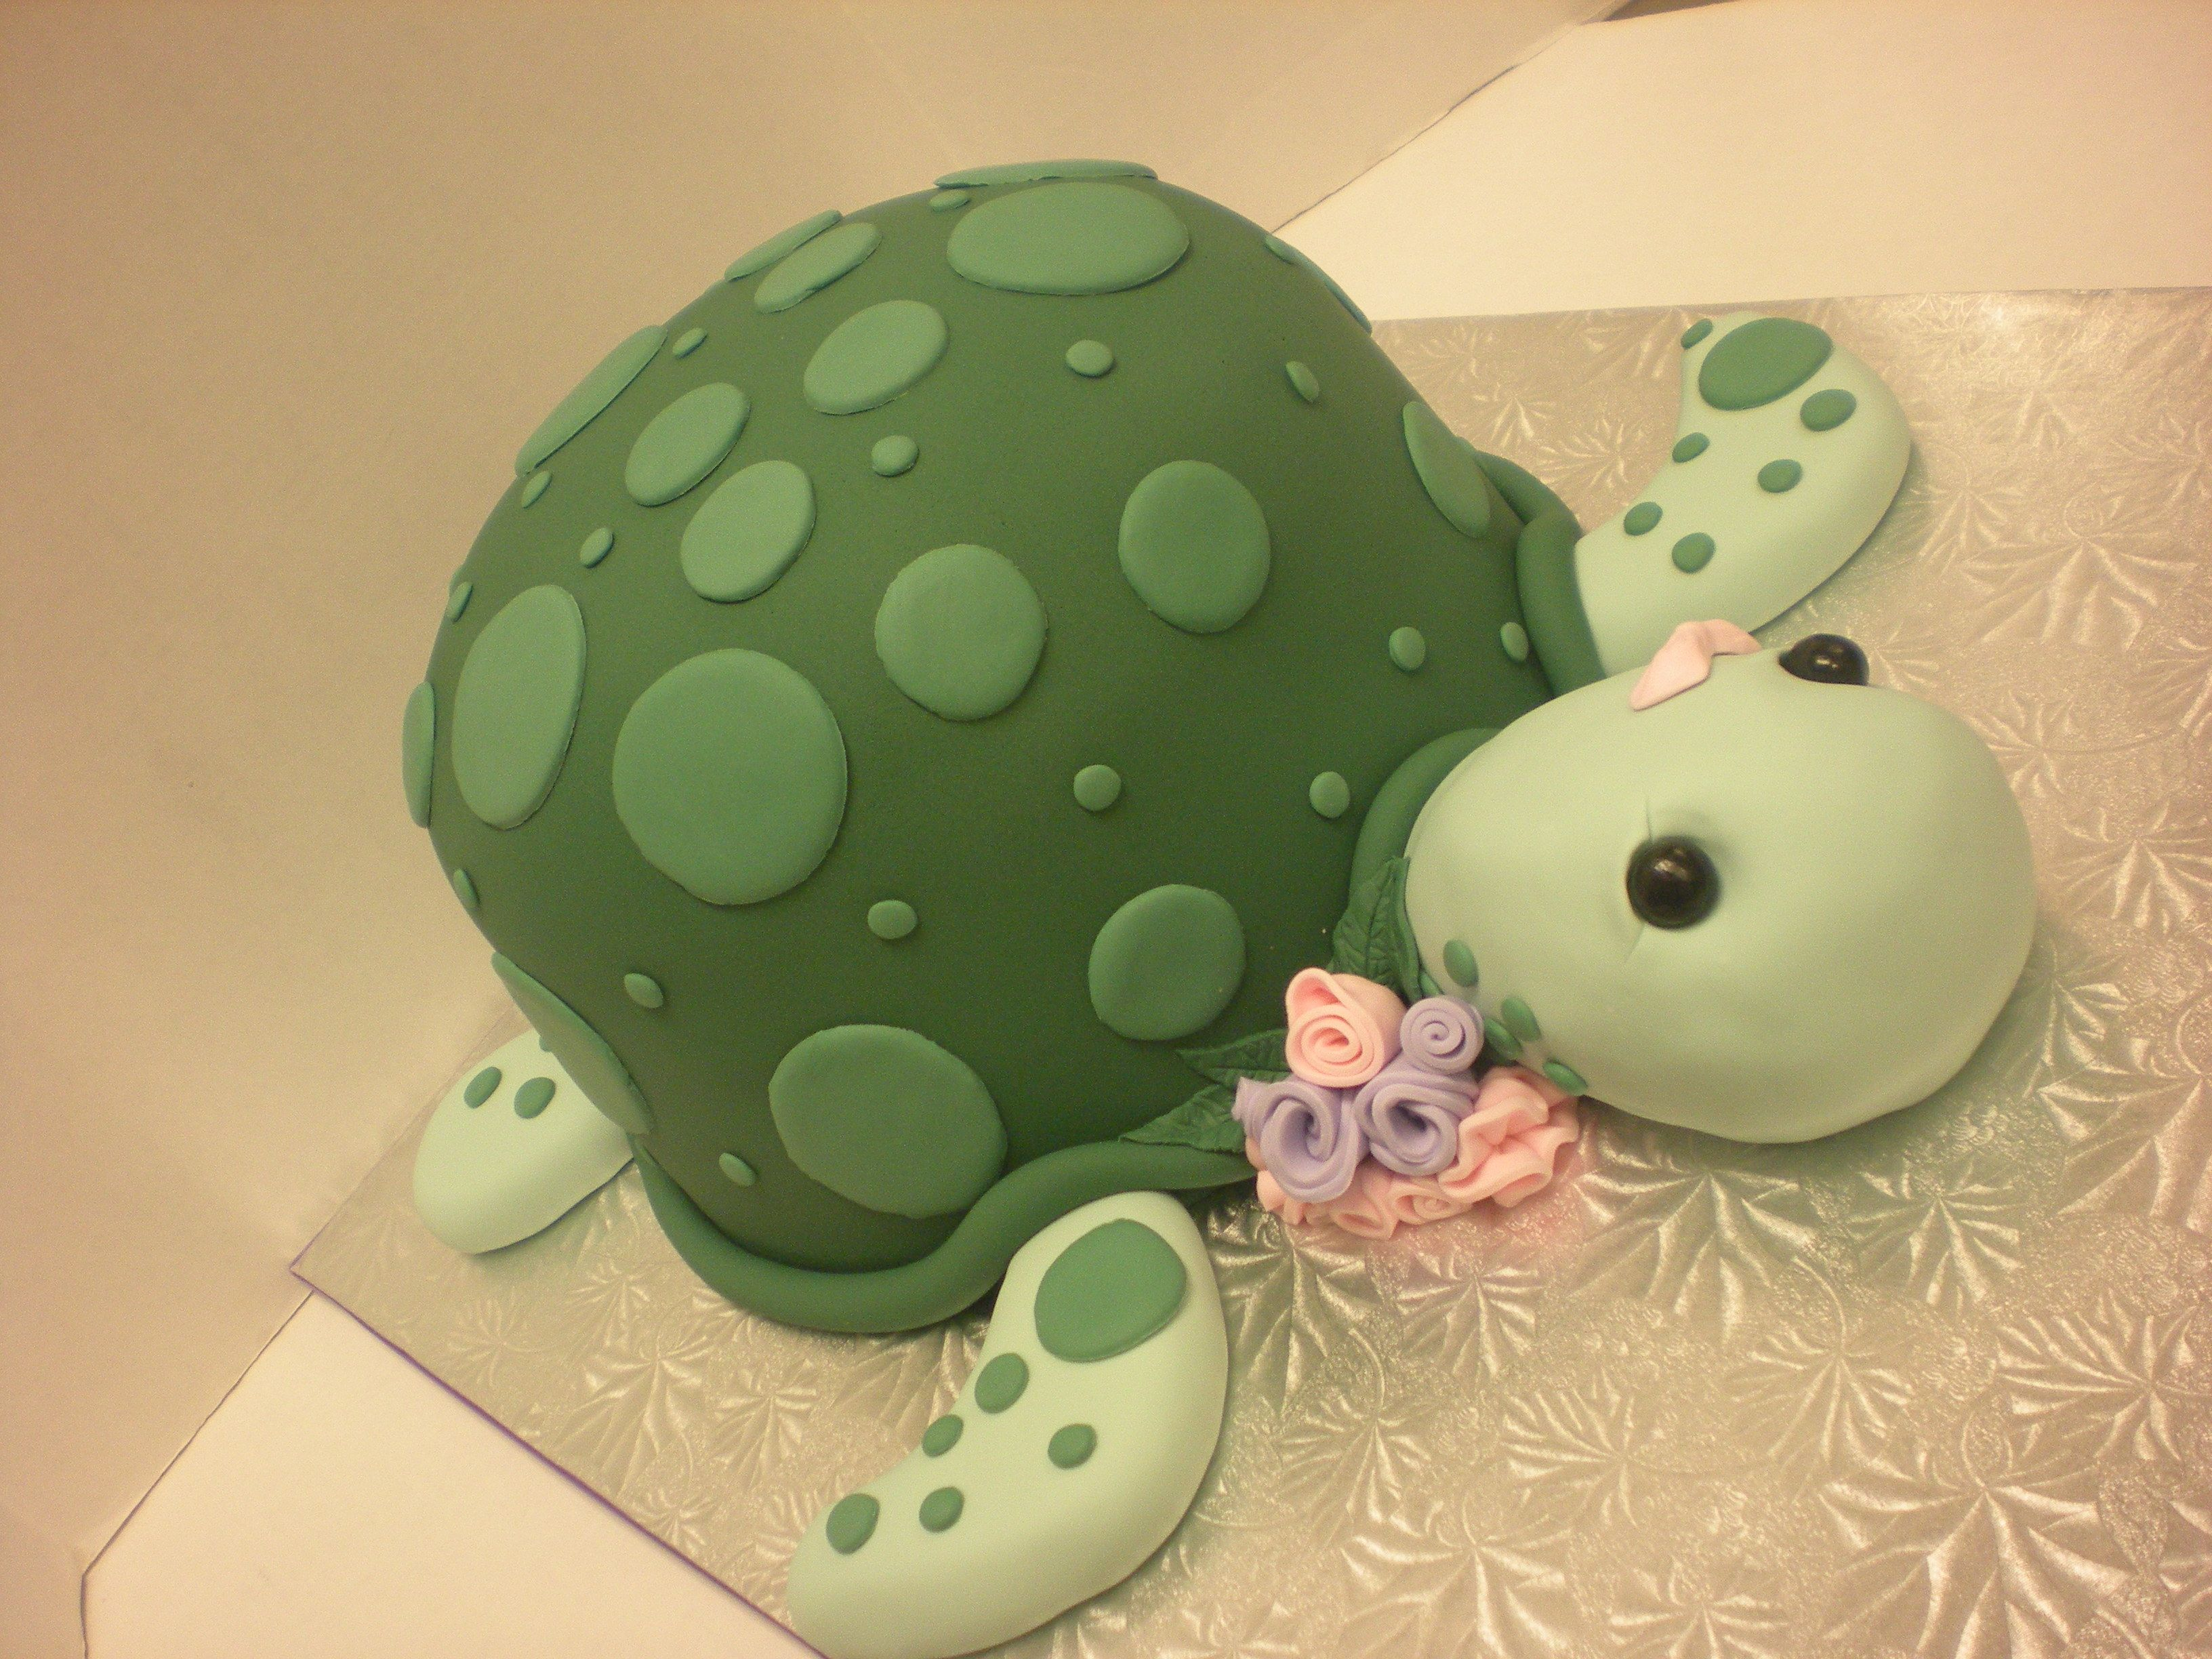 Turtle cake made by Classy Cakes instructor Karla Tompson Fiesta